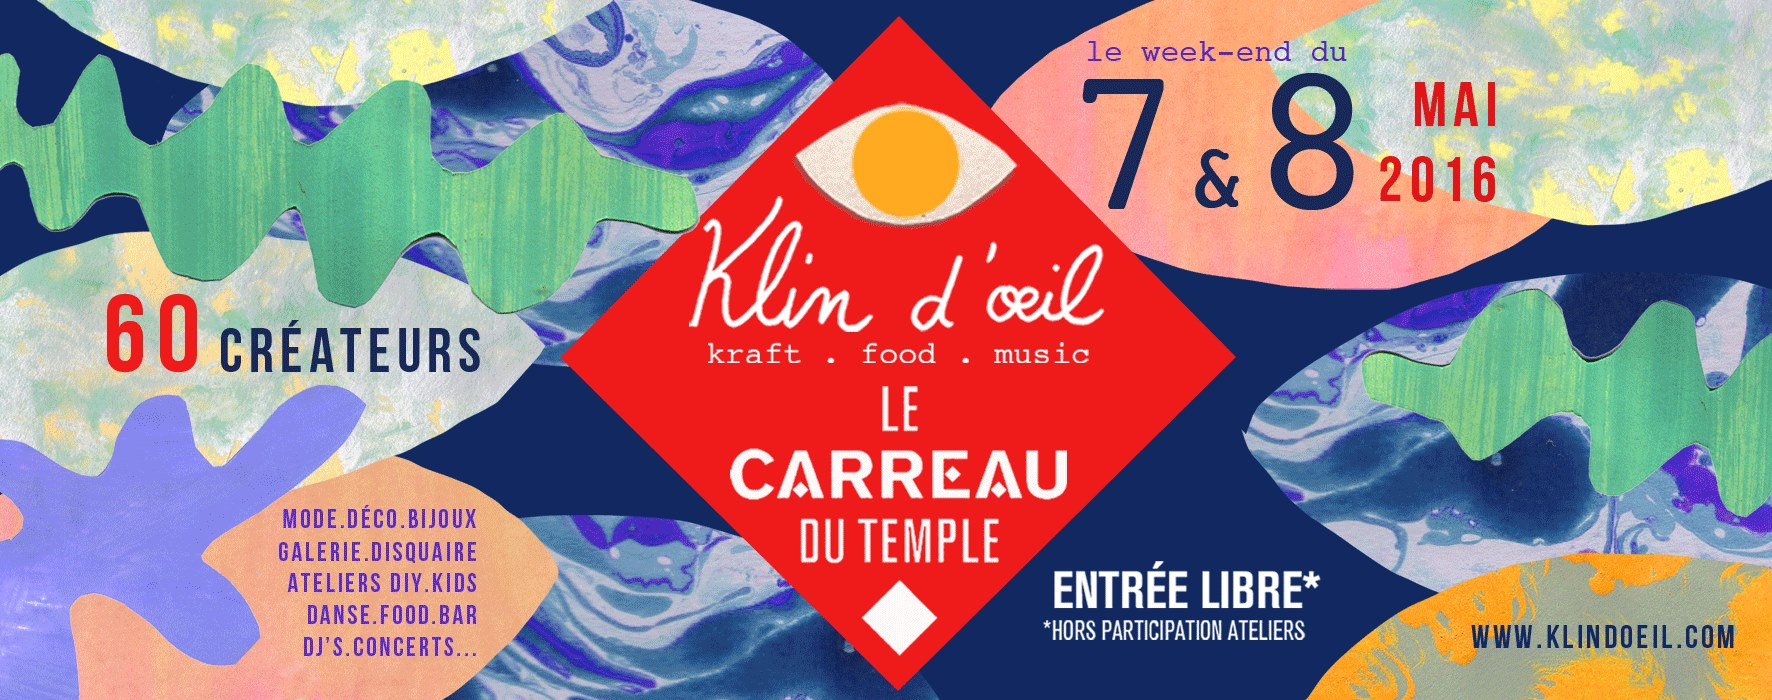 Klin d'œil - Carreau du Temple 2016